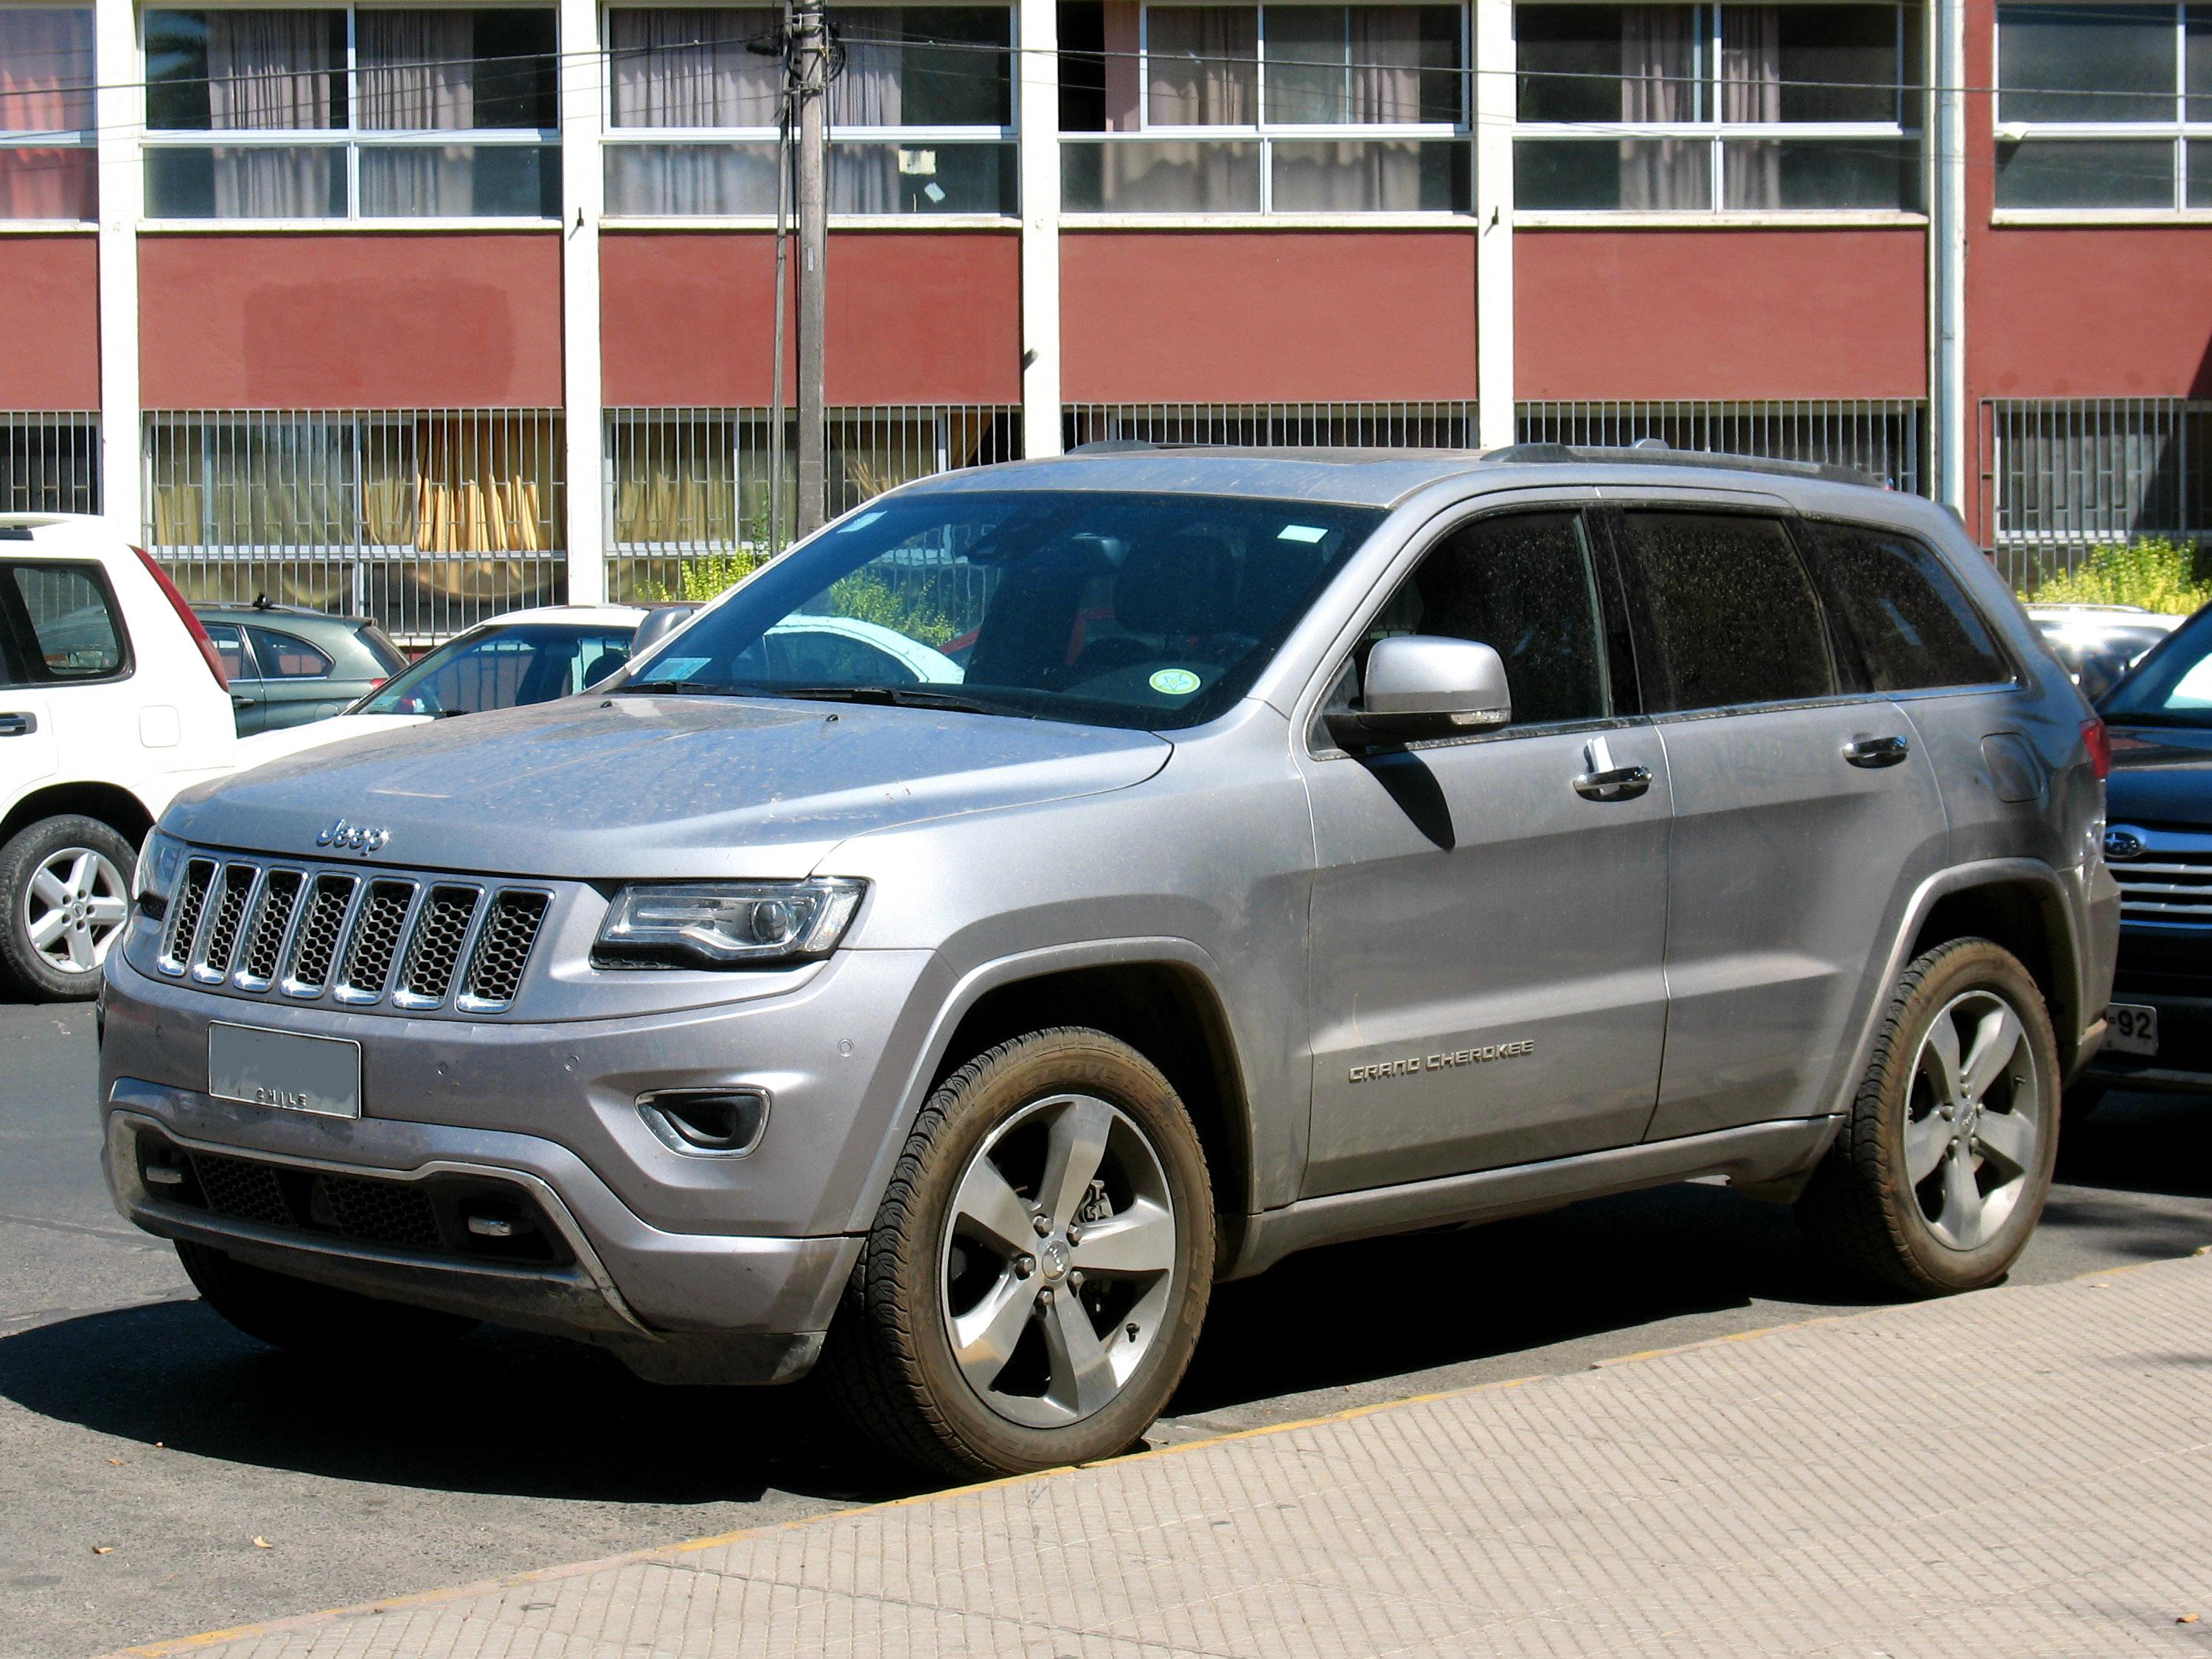 jeep informations cherokee grand photos bestcarmag articles makes com overland